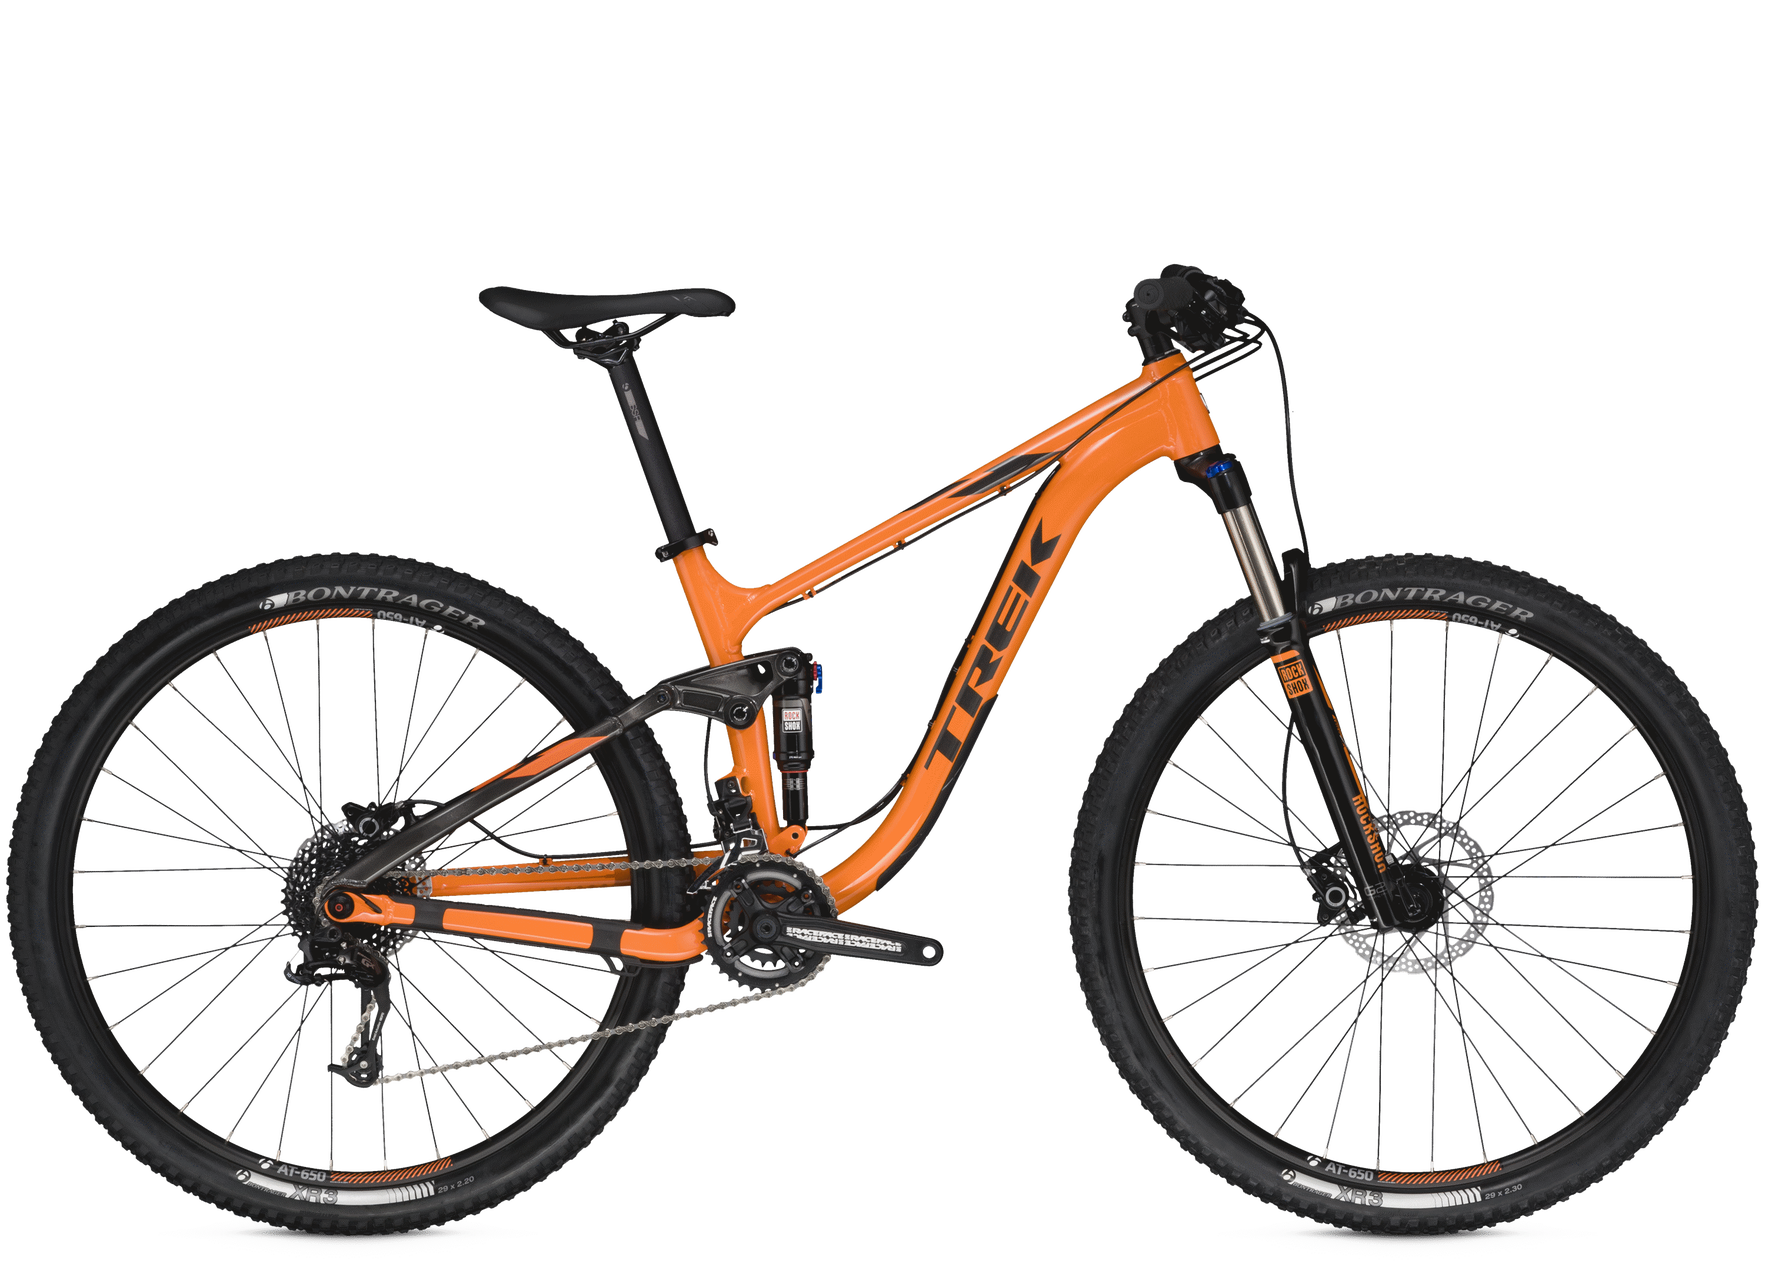 Bicicleta Montaña Trail TREK Rodado 29 Doble Suspension FUEL EX 5 29 ...